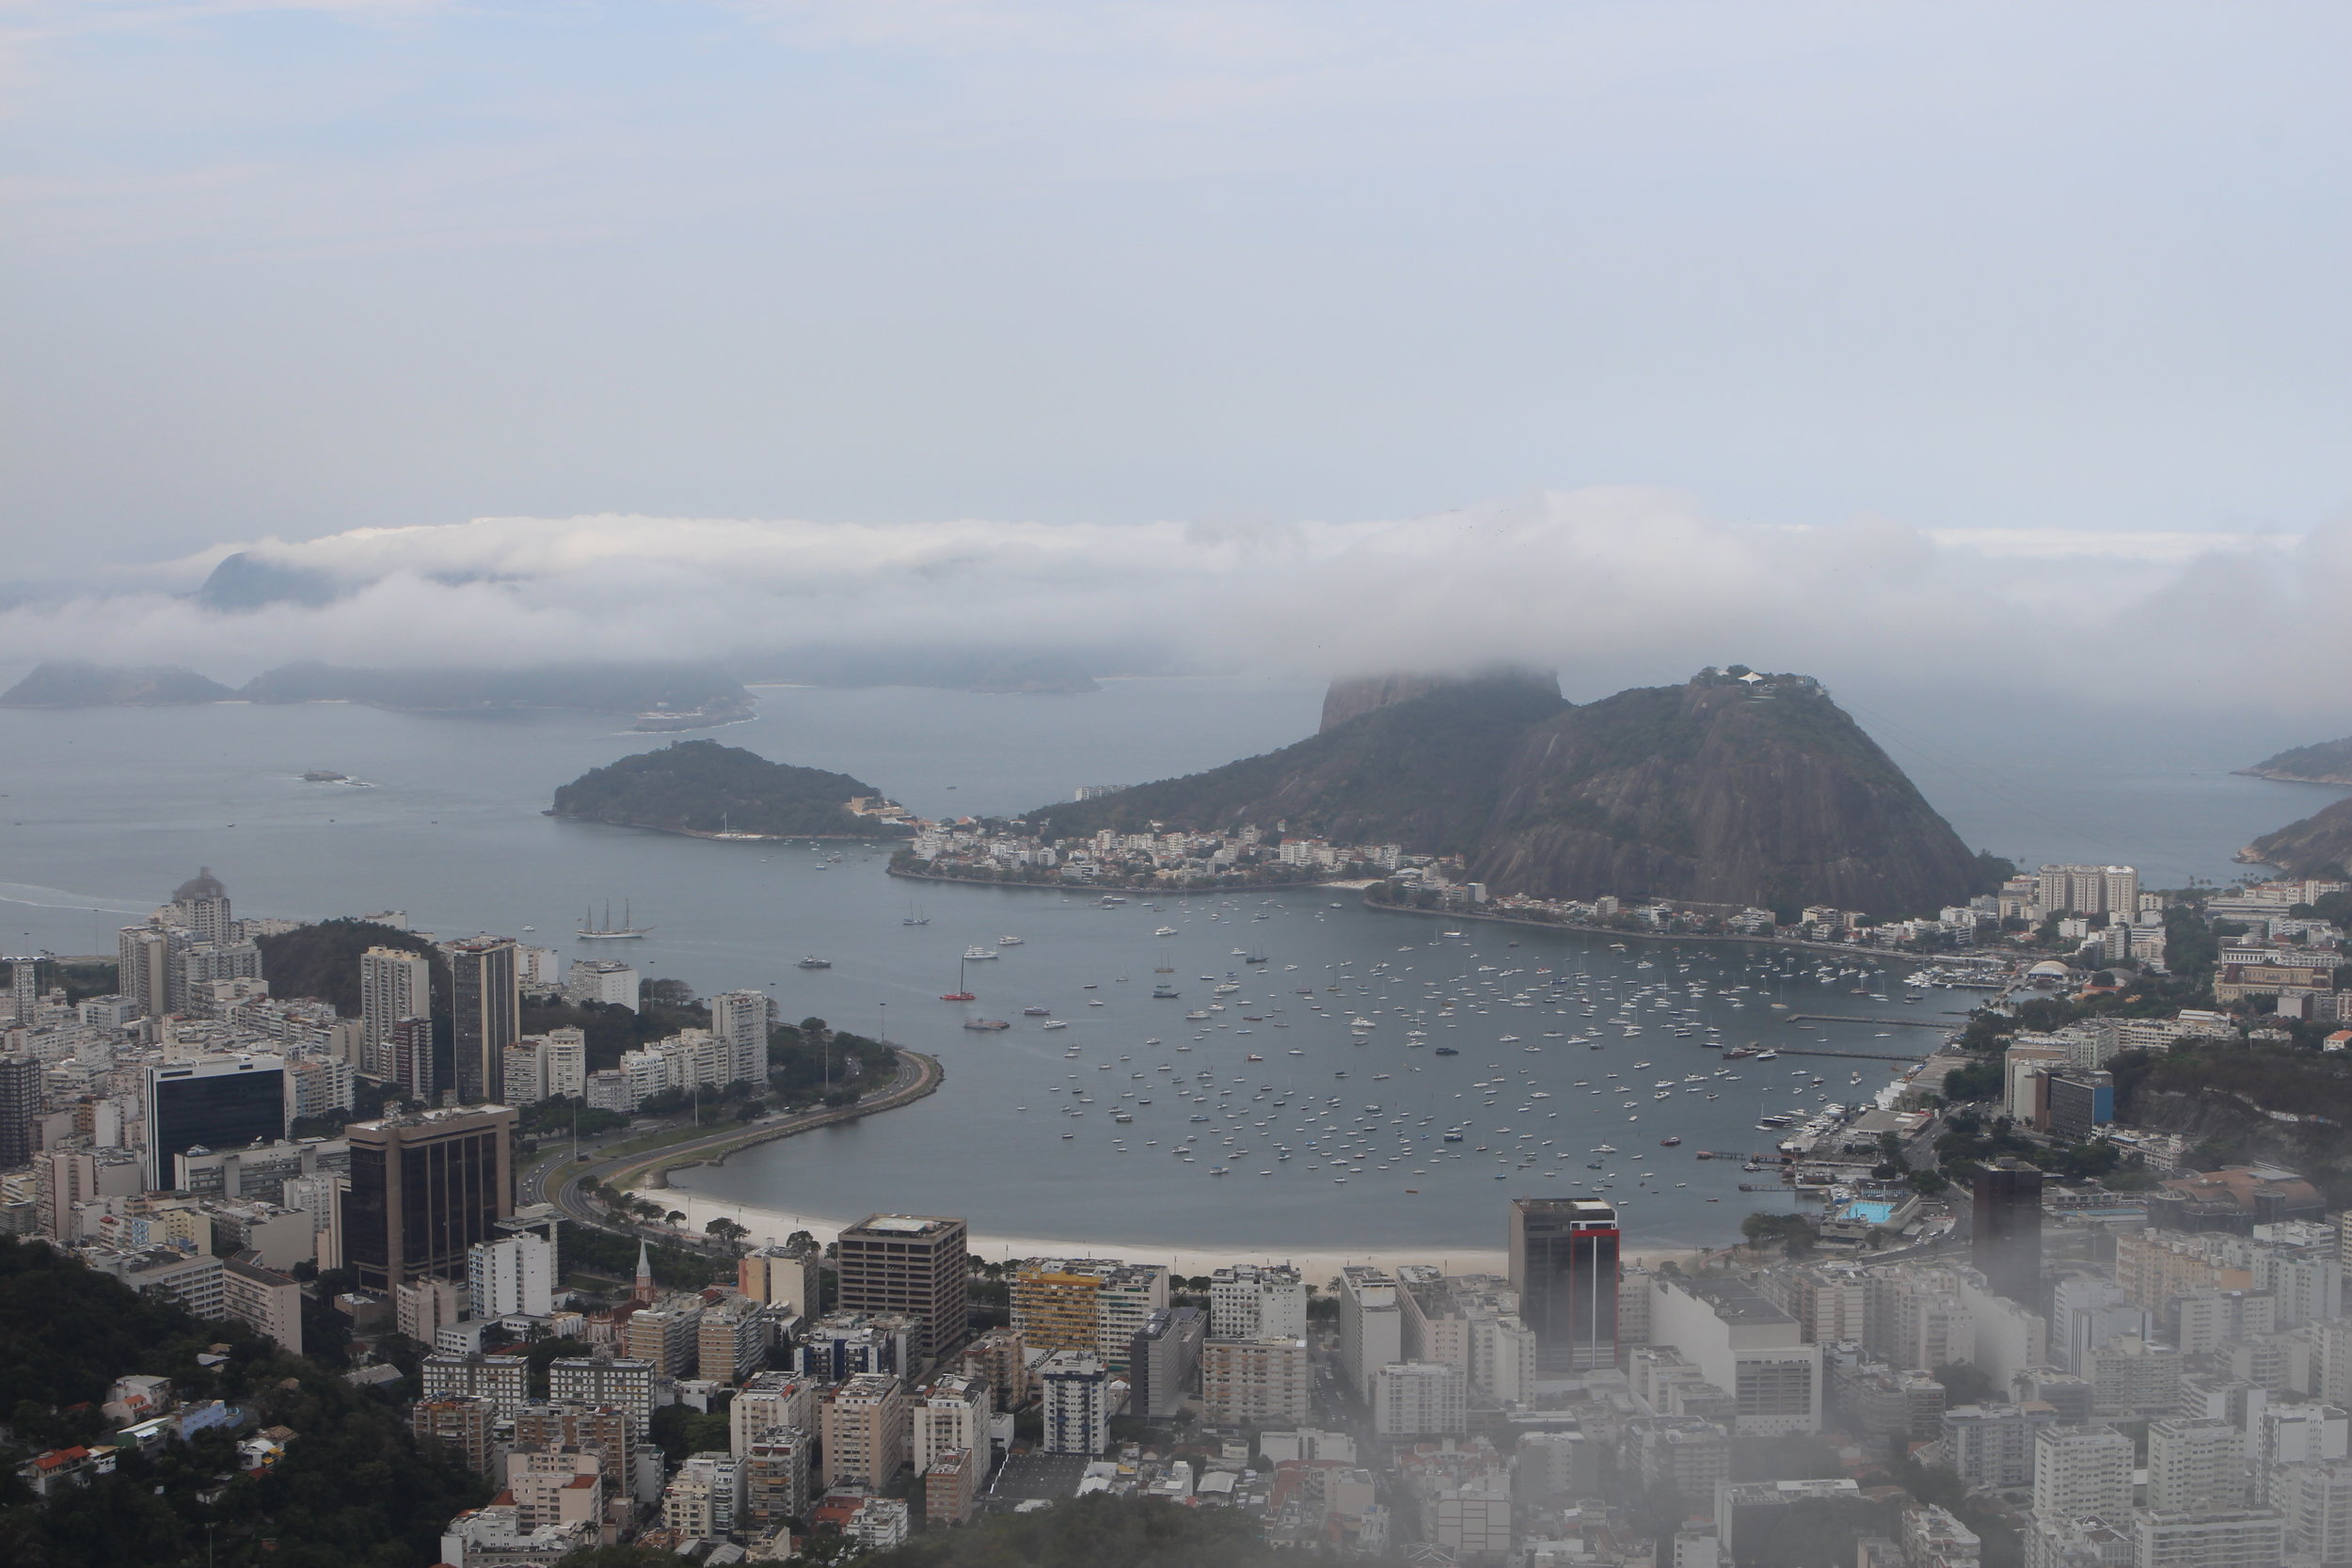 Clouds shroud the summit of Sugar Loaf, as eyes turn away from Brazil